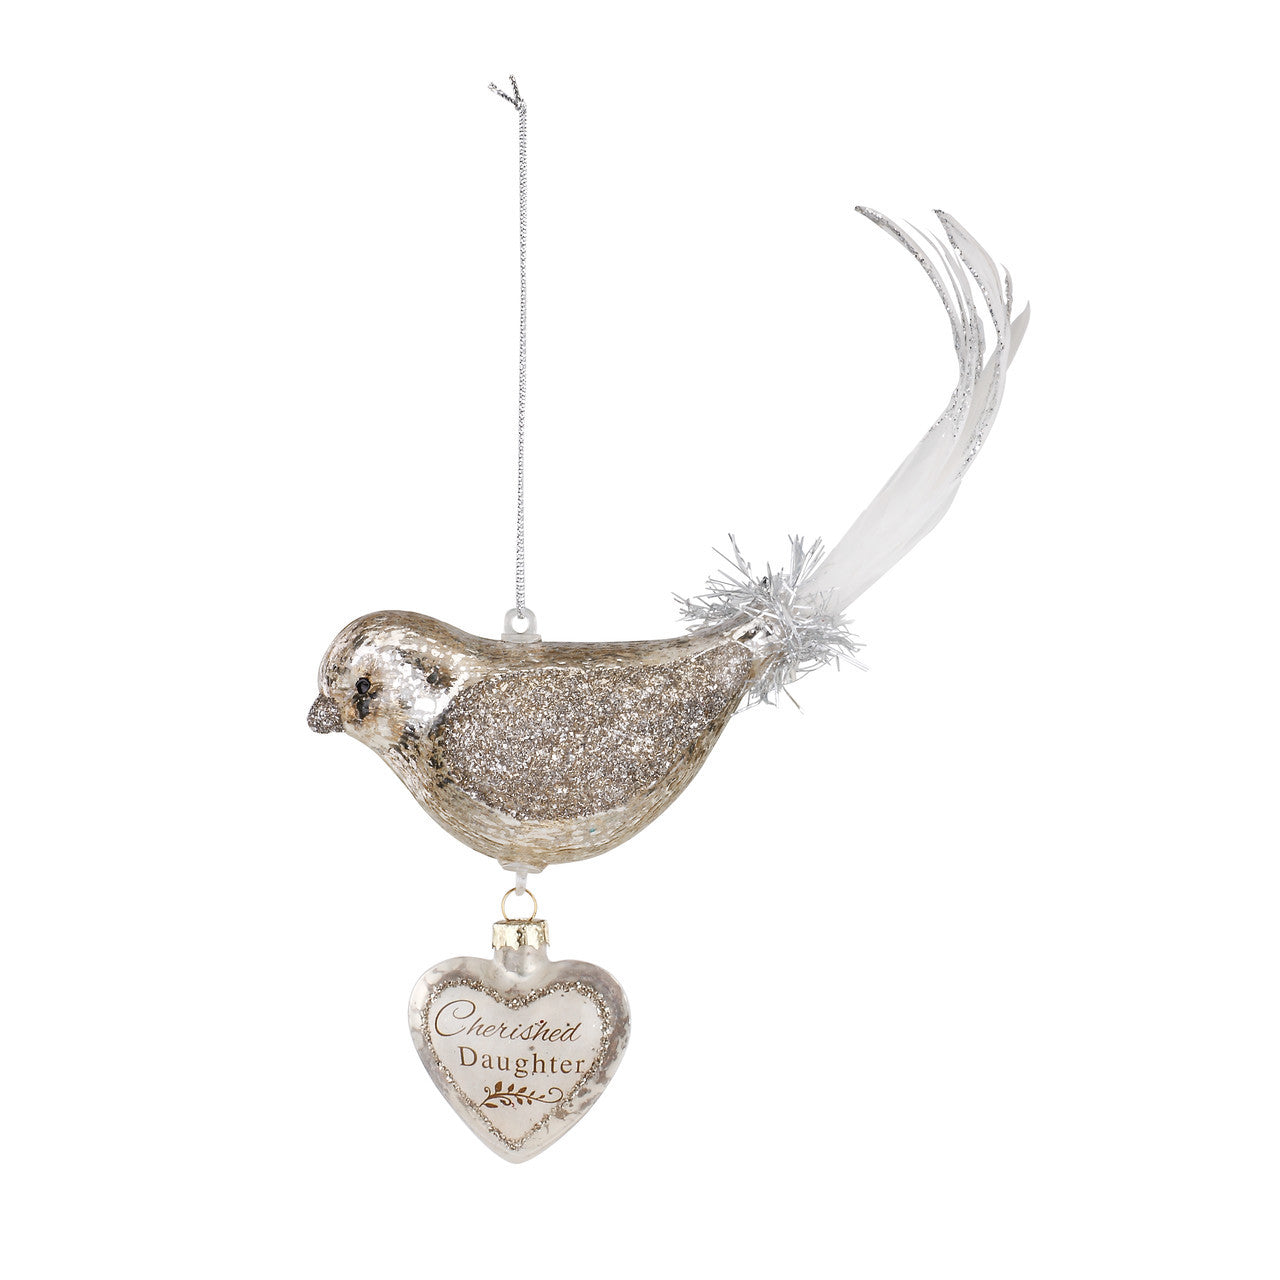 Demdaco Bird Dangle Heart Glass Ornament - Daughter | Putti Christmas